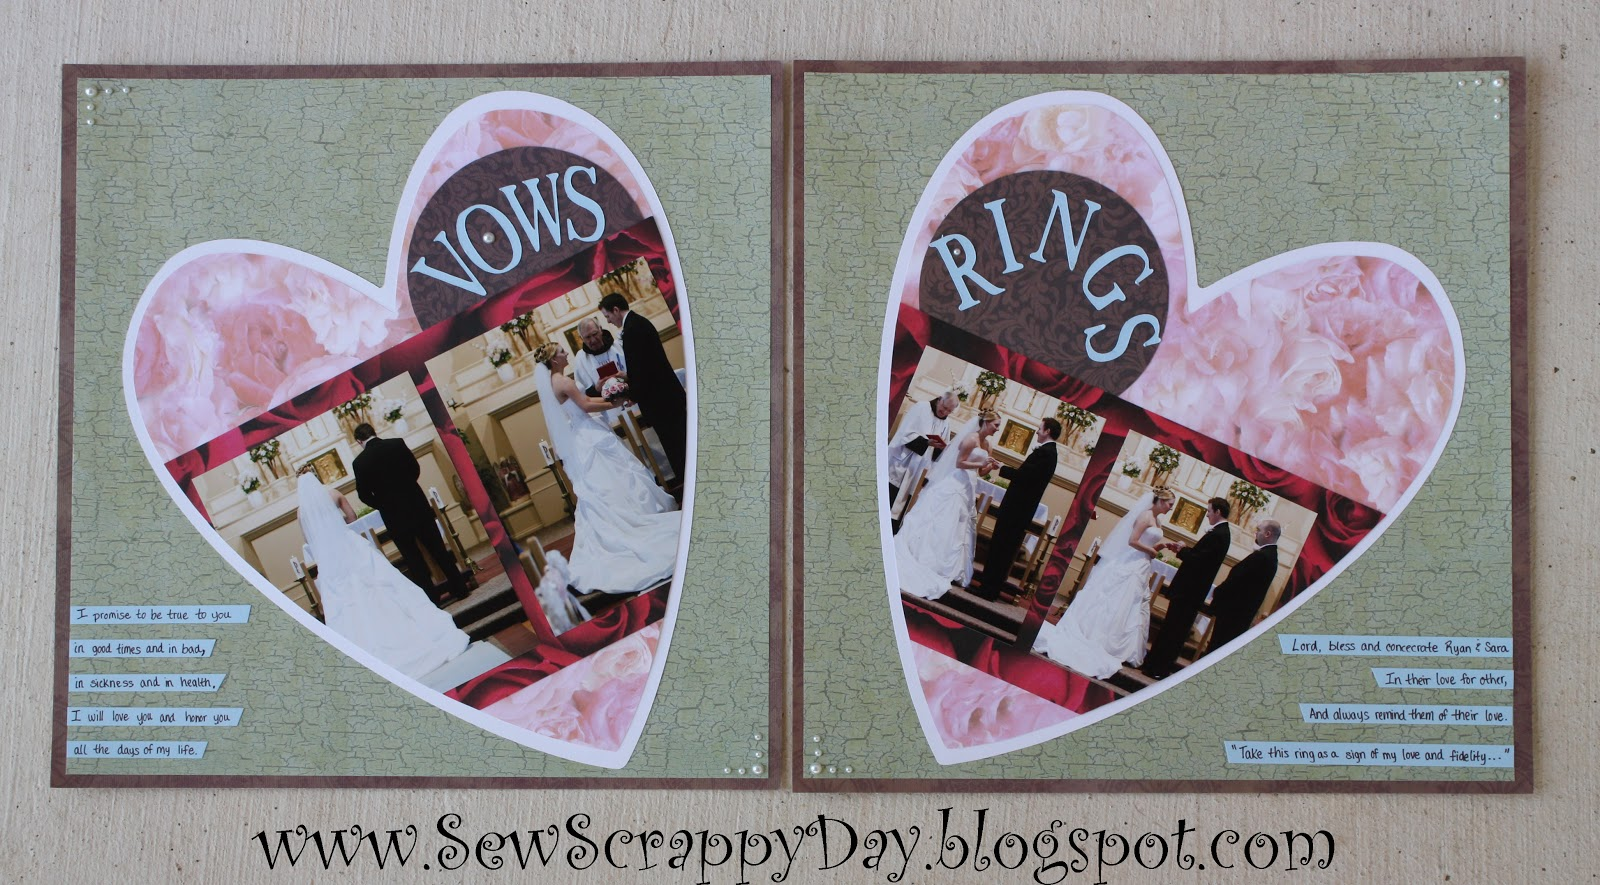 Wedding scrapbook ideas layouts - The Version From The Magazine Was Only A 1 Page Layout For The Wedding Vows But I Quickly Transposed It Into A Two Page Layout By Mirroring The Images And